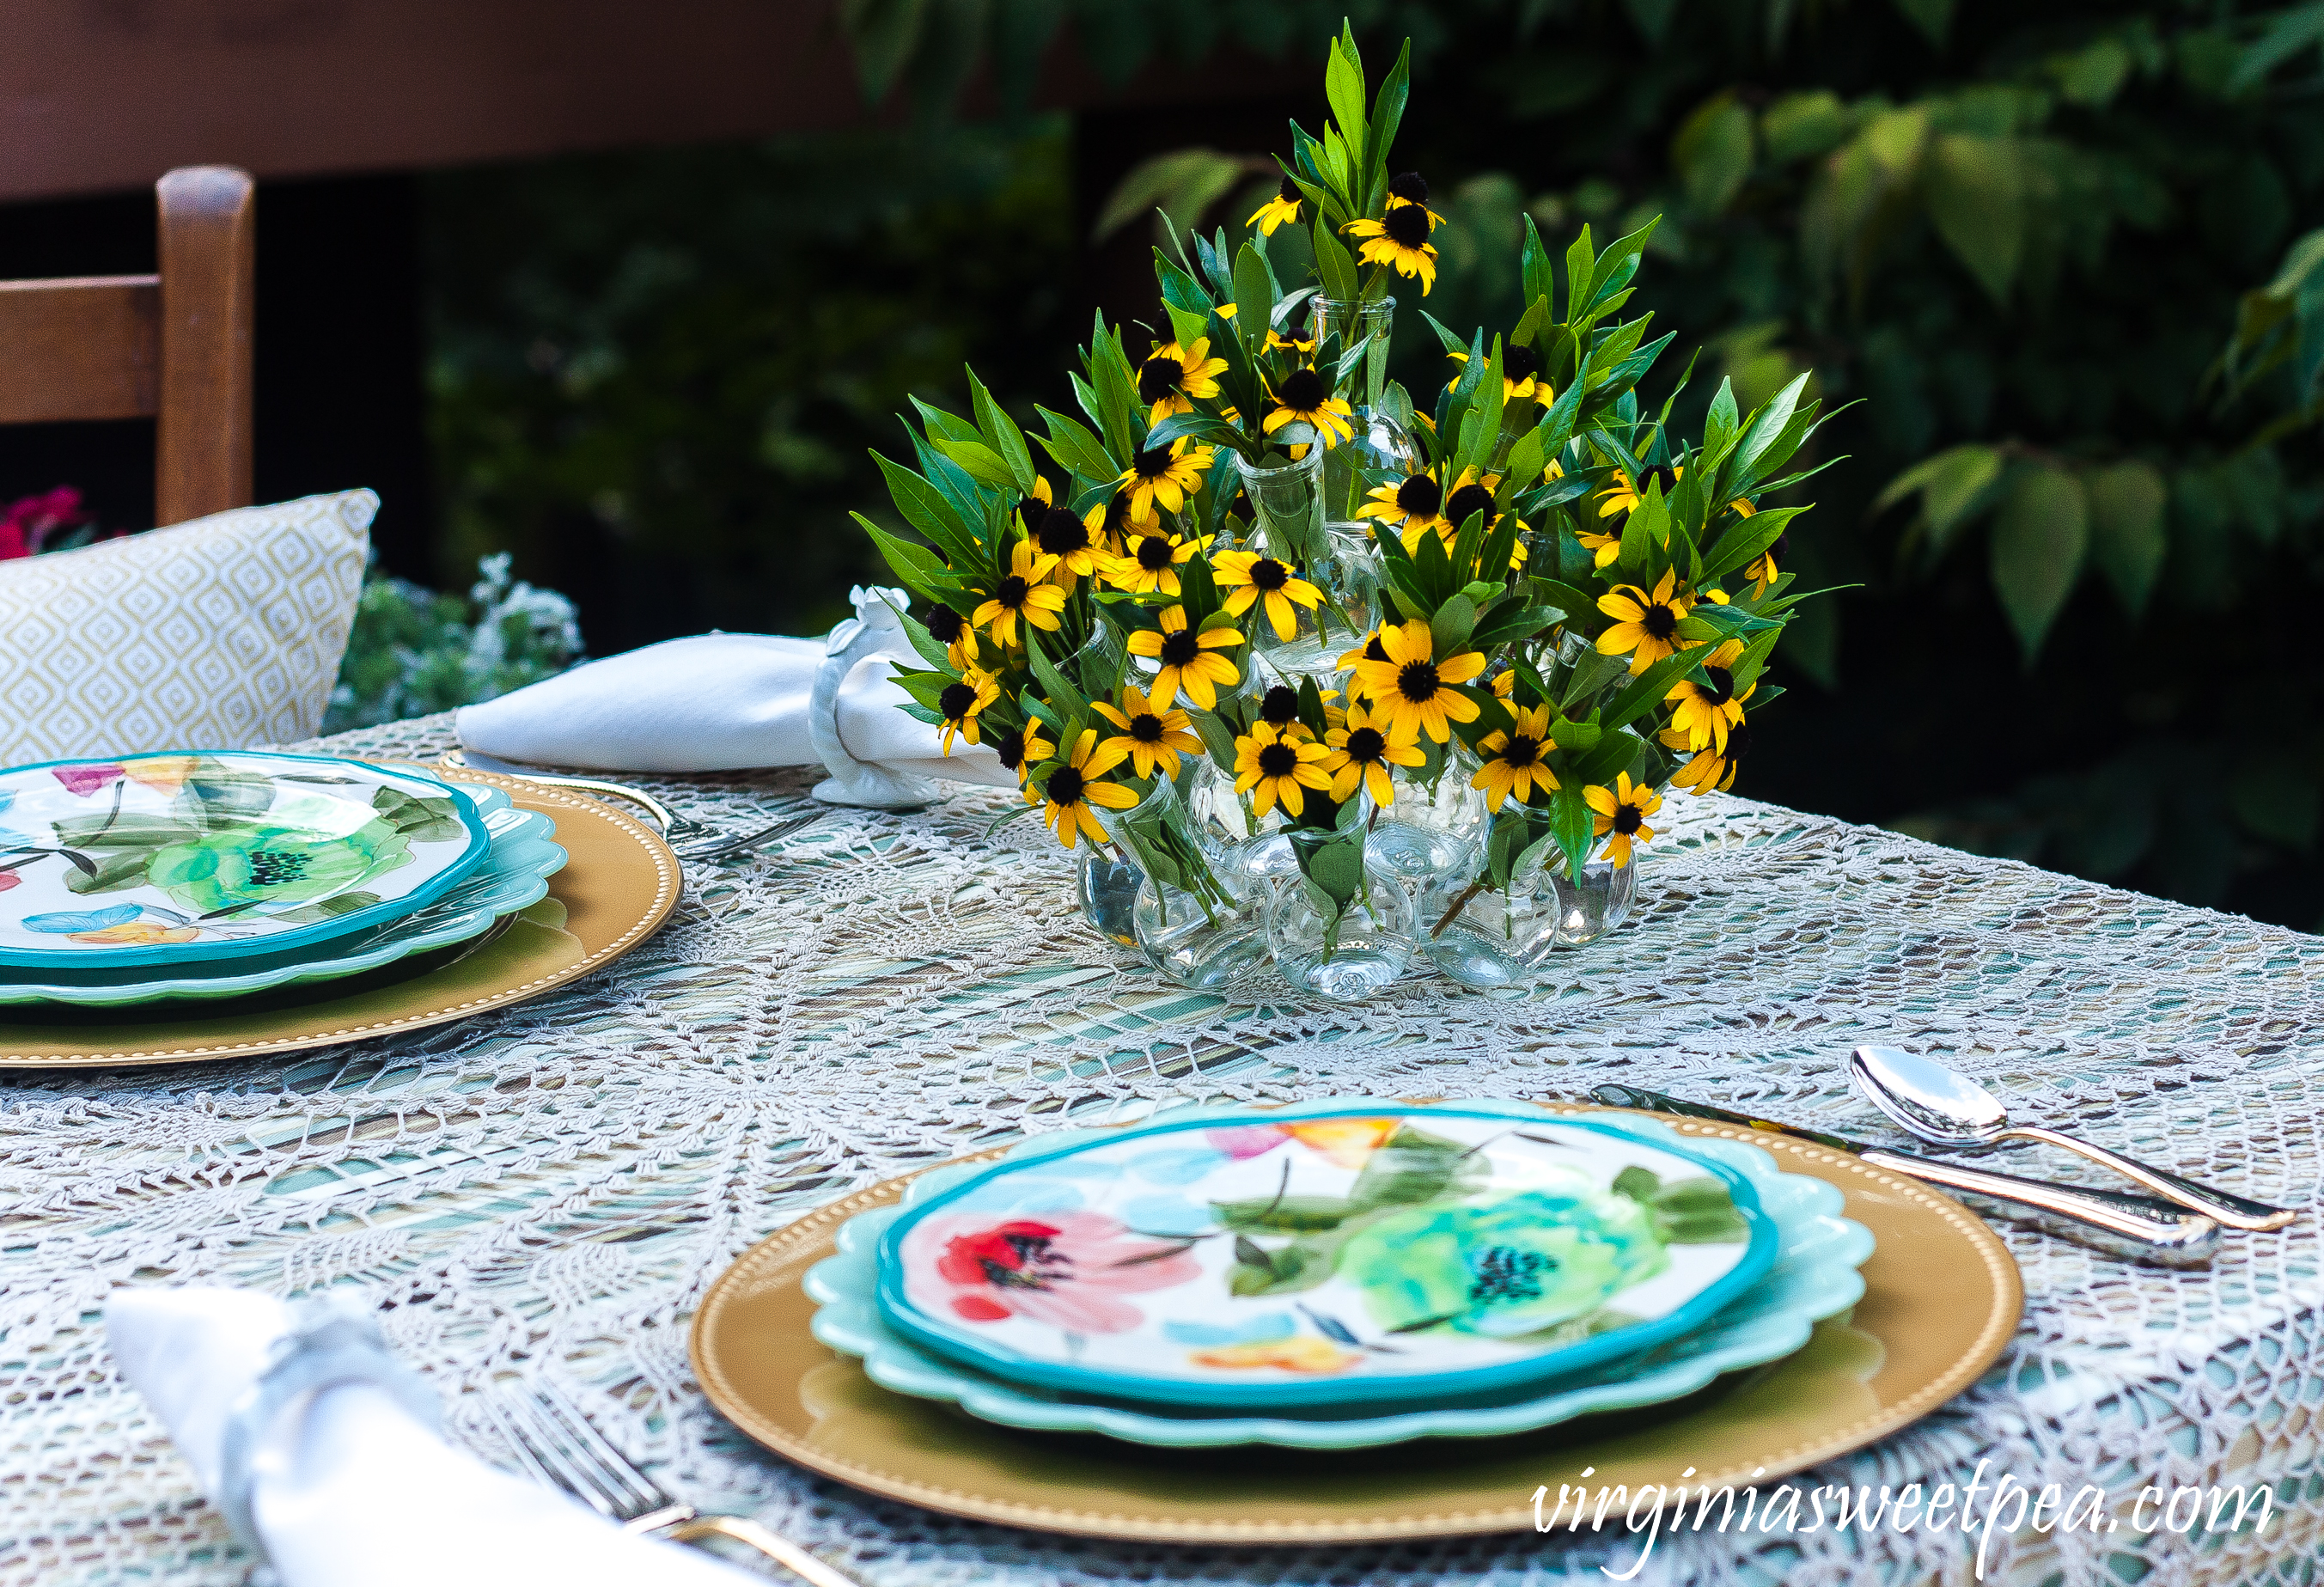 End of summer tablescape set outdoors with Pioneer Woman dishes and a Rudbeckia and Gardenia foliage centerpiece